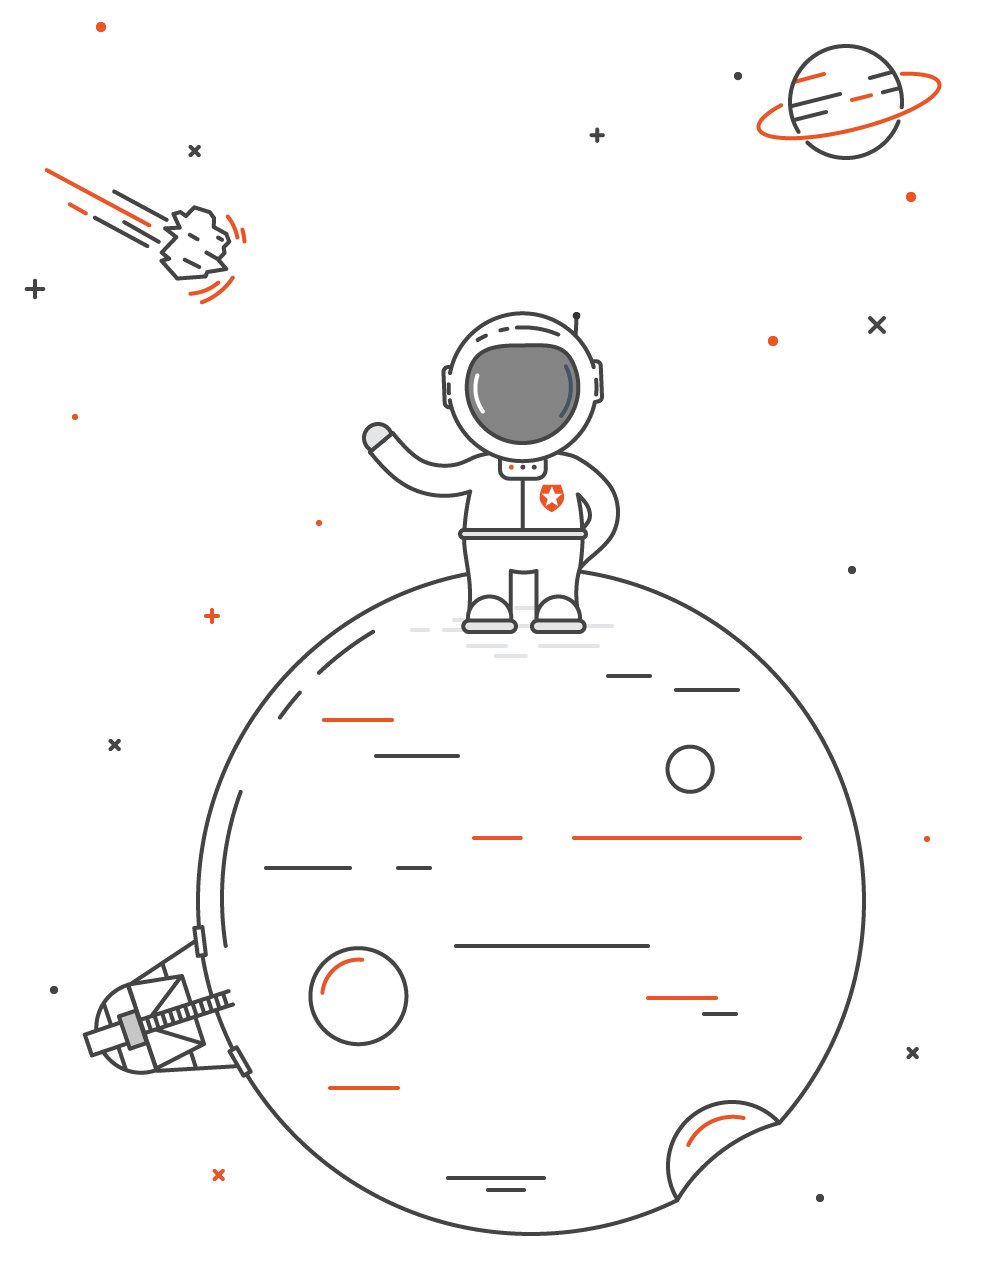 Auth0 Ambassador Program astronaut icon